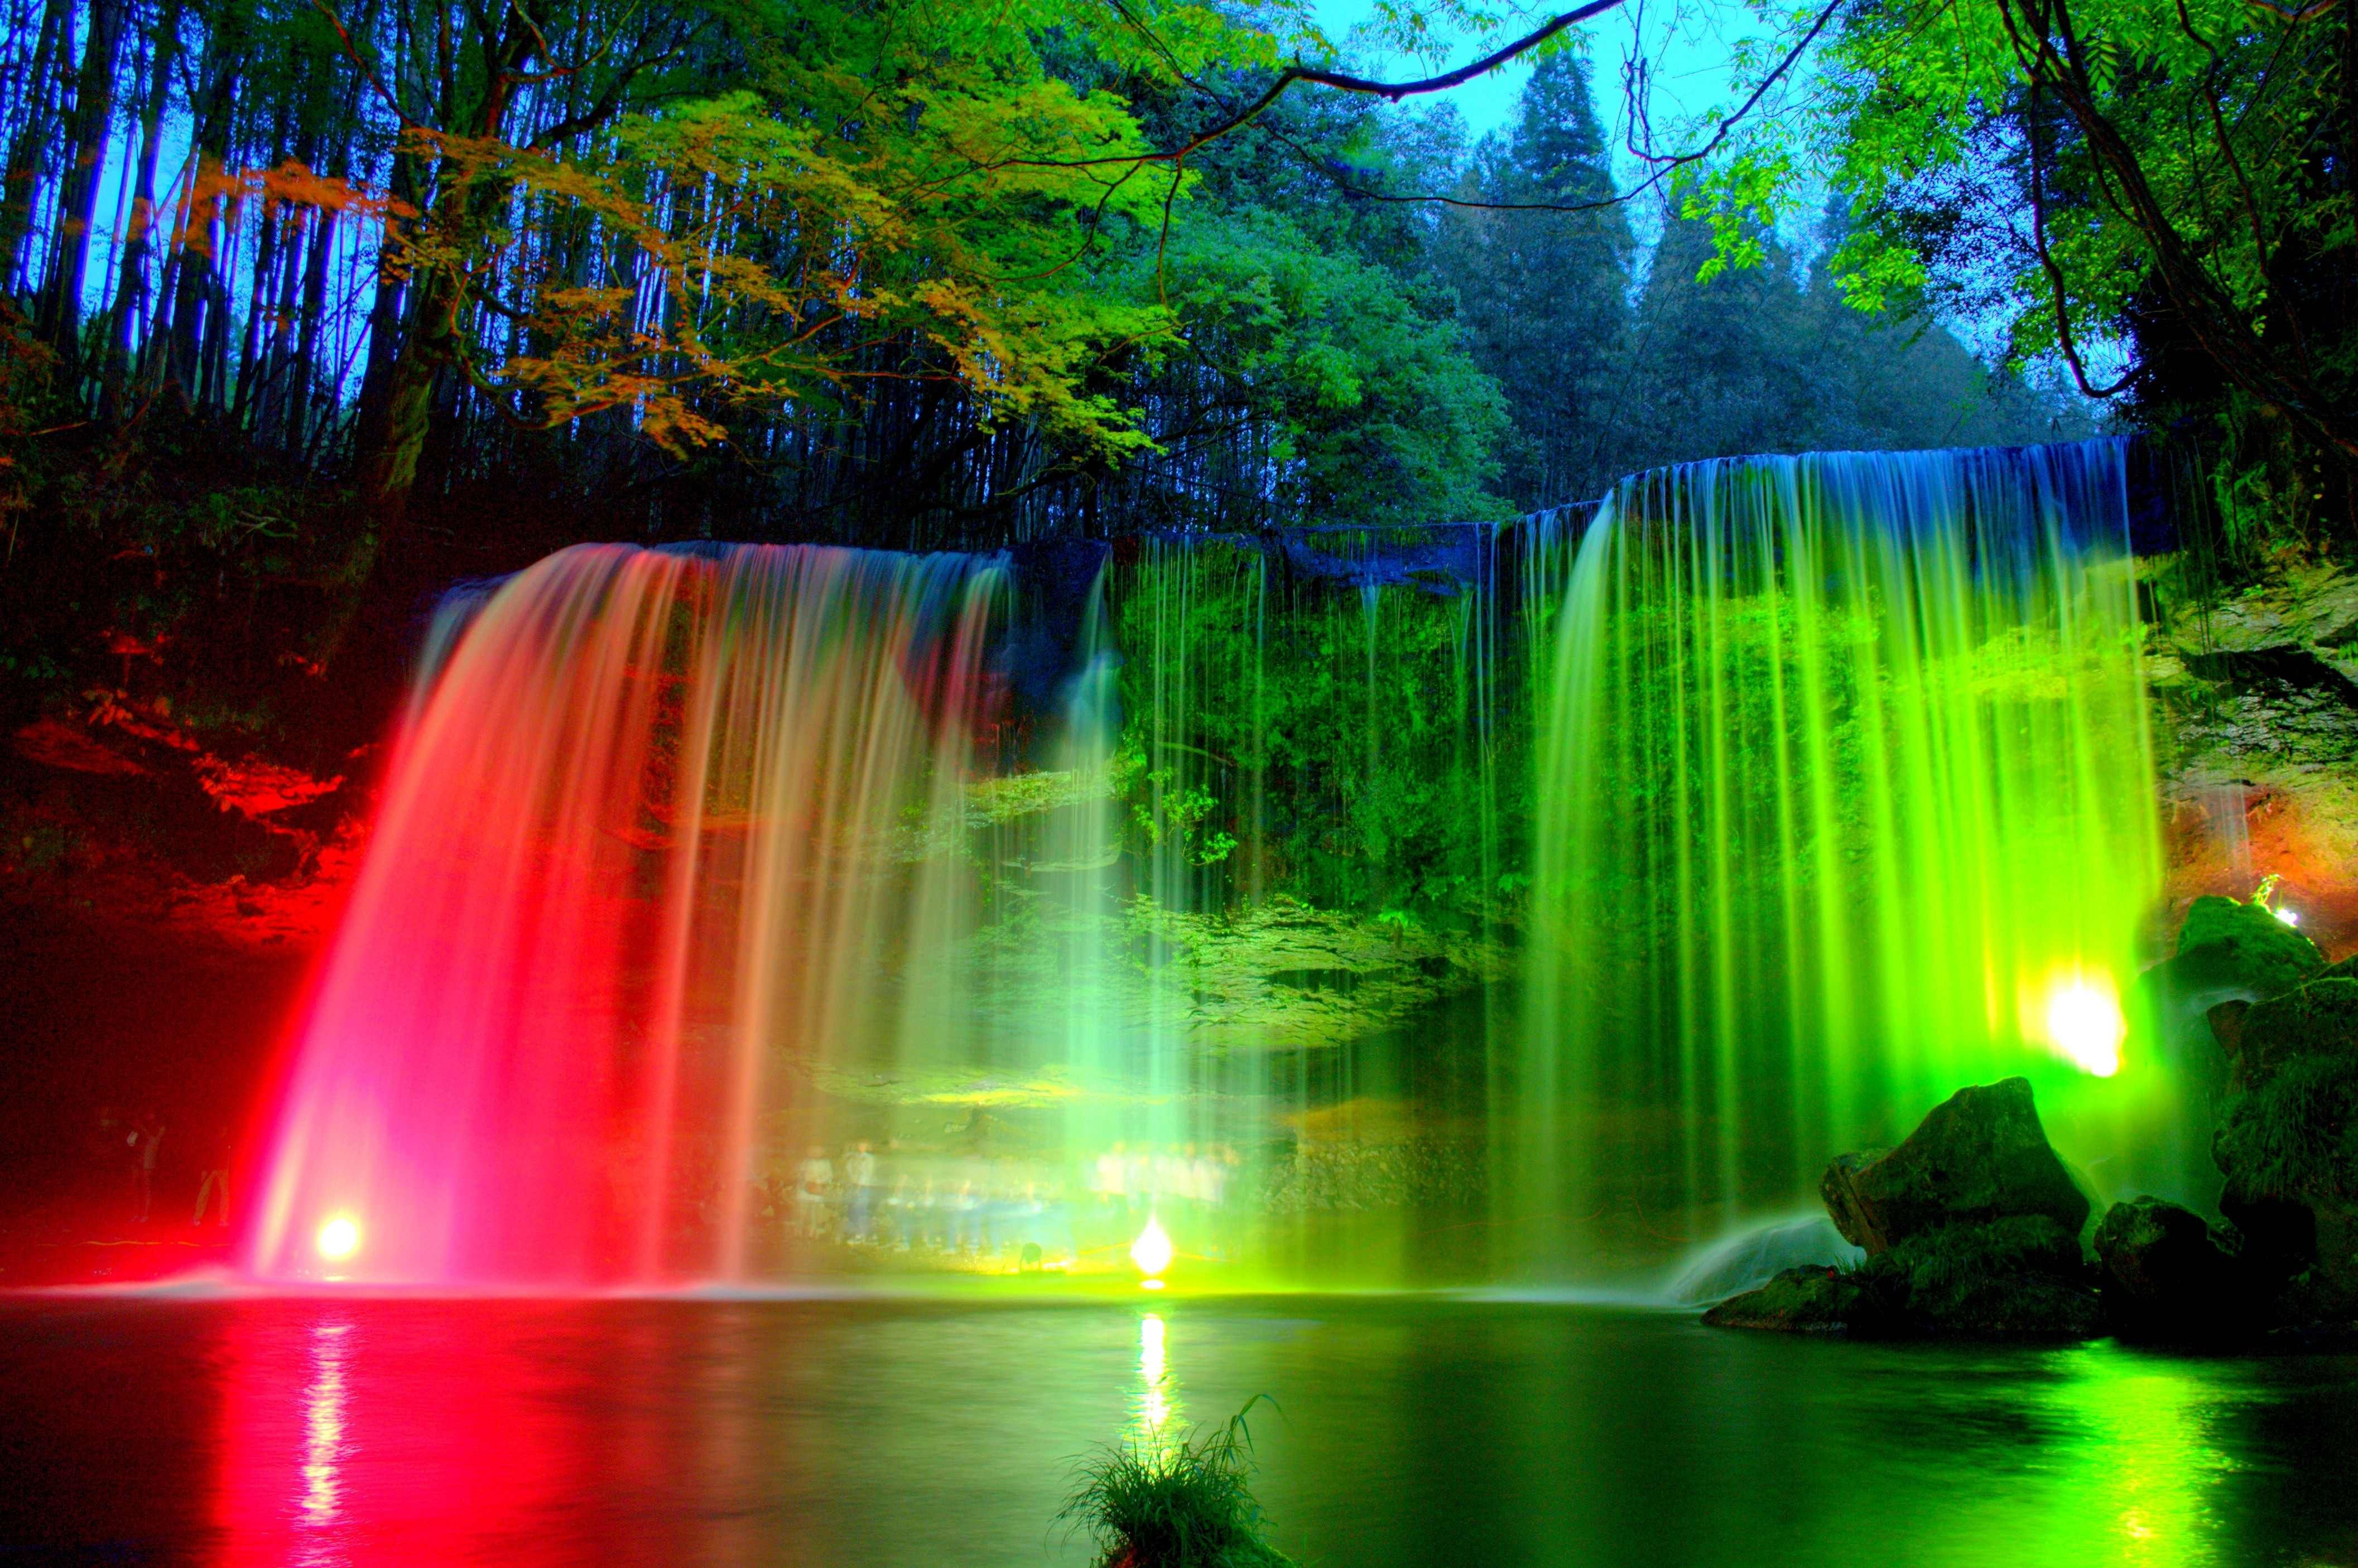 Halloween Wallpaper Hd Resolution Hupages Download Iphone Wallpapers Rainbow Waterfall Waterfall Pictures